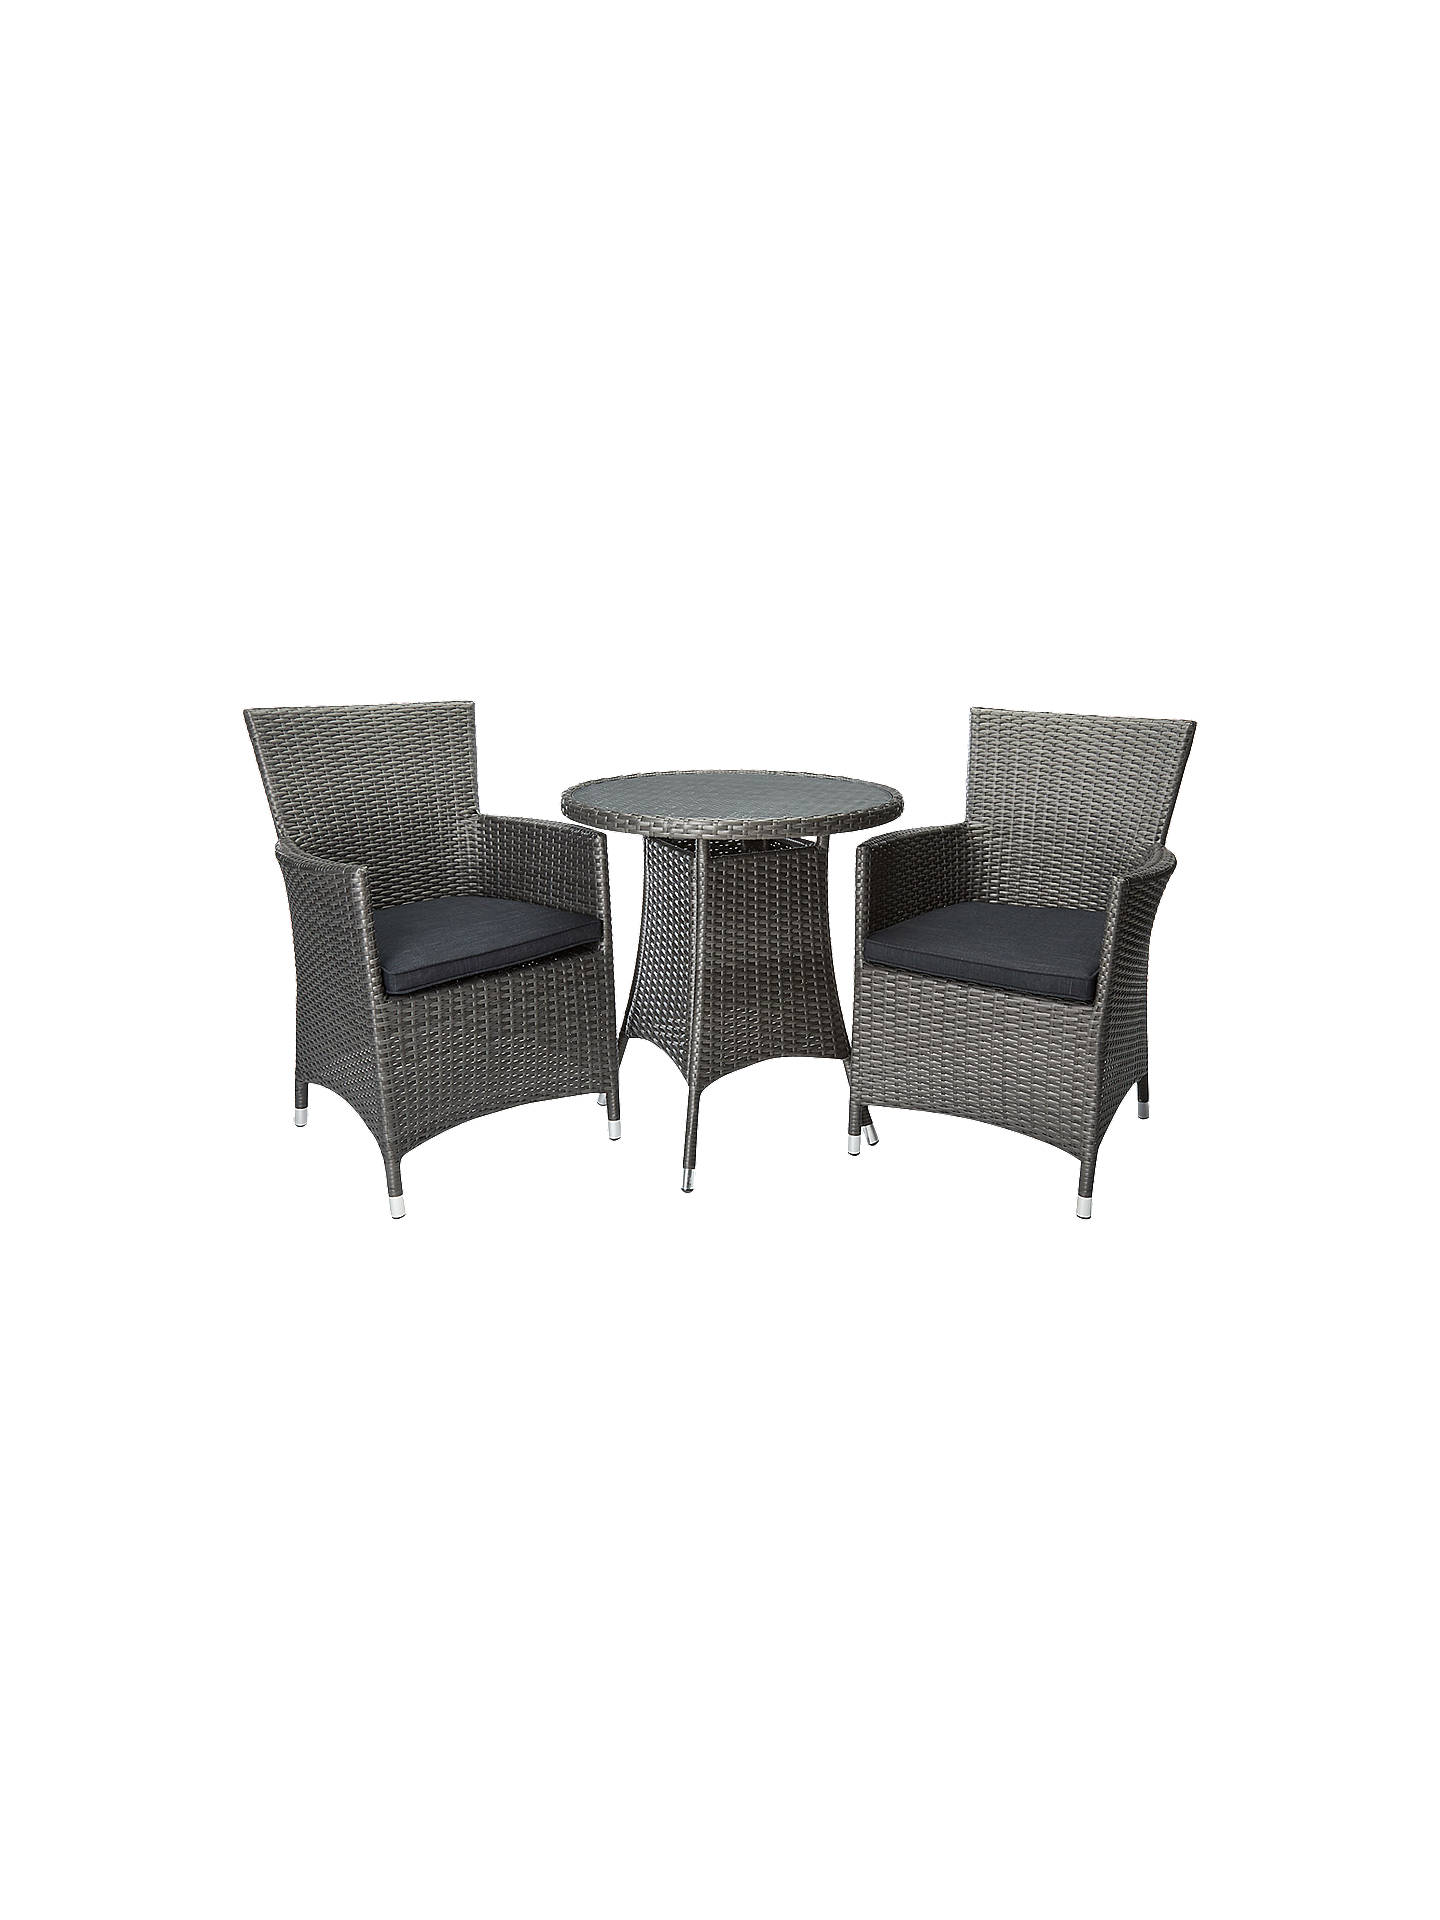 John Lewis Almeria 2 Seater Outdoor Bistro Table And Chairs Set Grey Online At